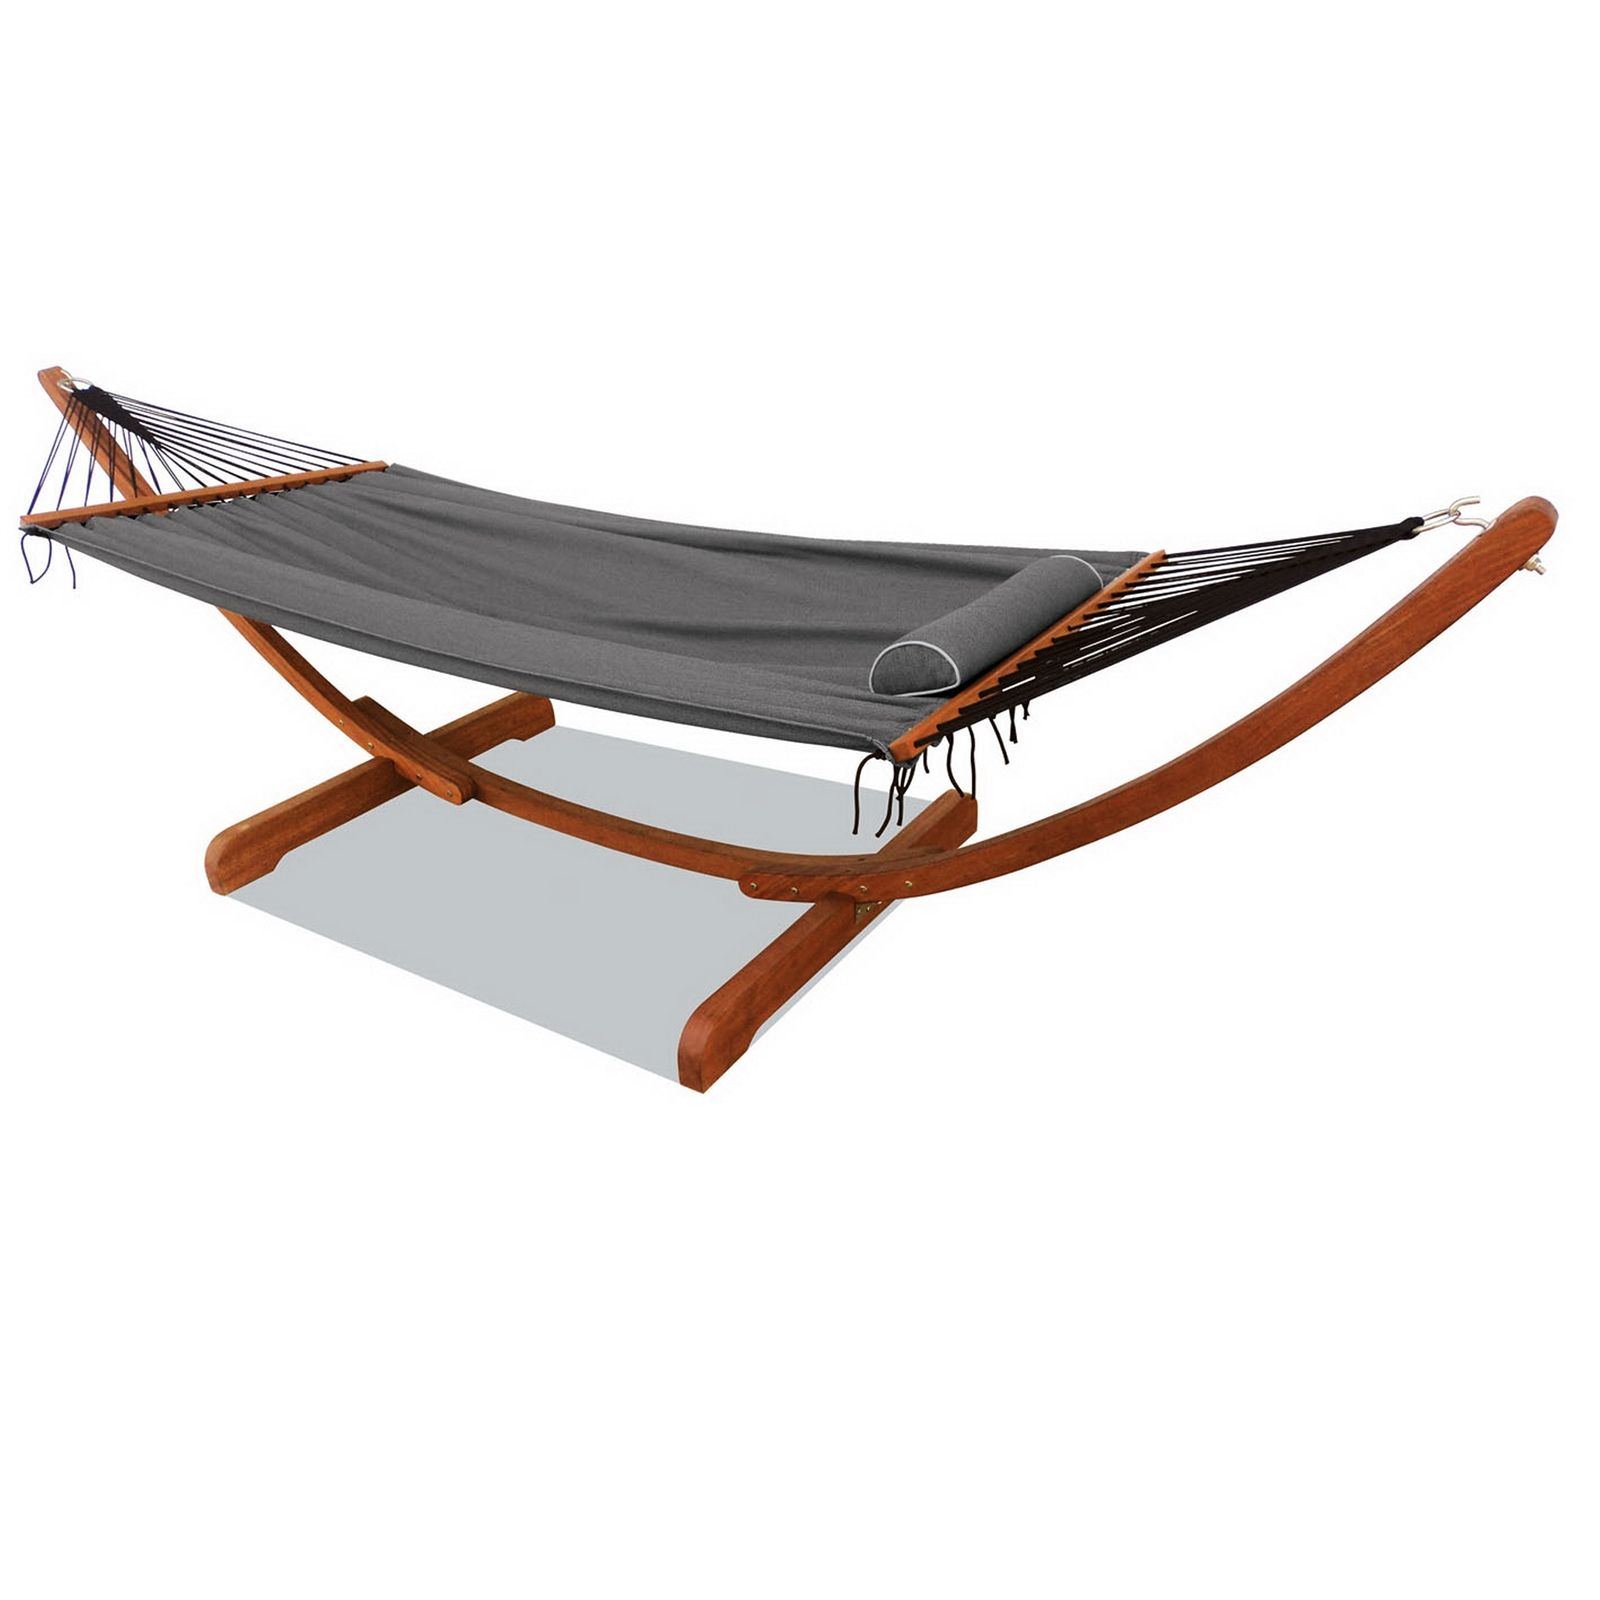 Medium image of find mimosa curved timber framed hammock at bunnings warehouse  visit your local store for the